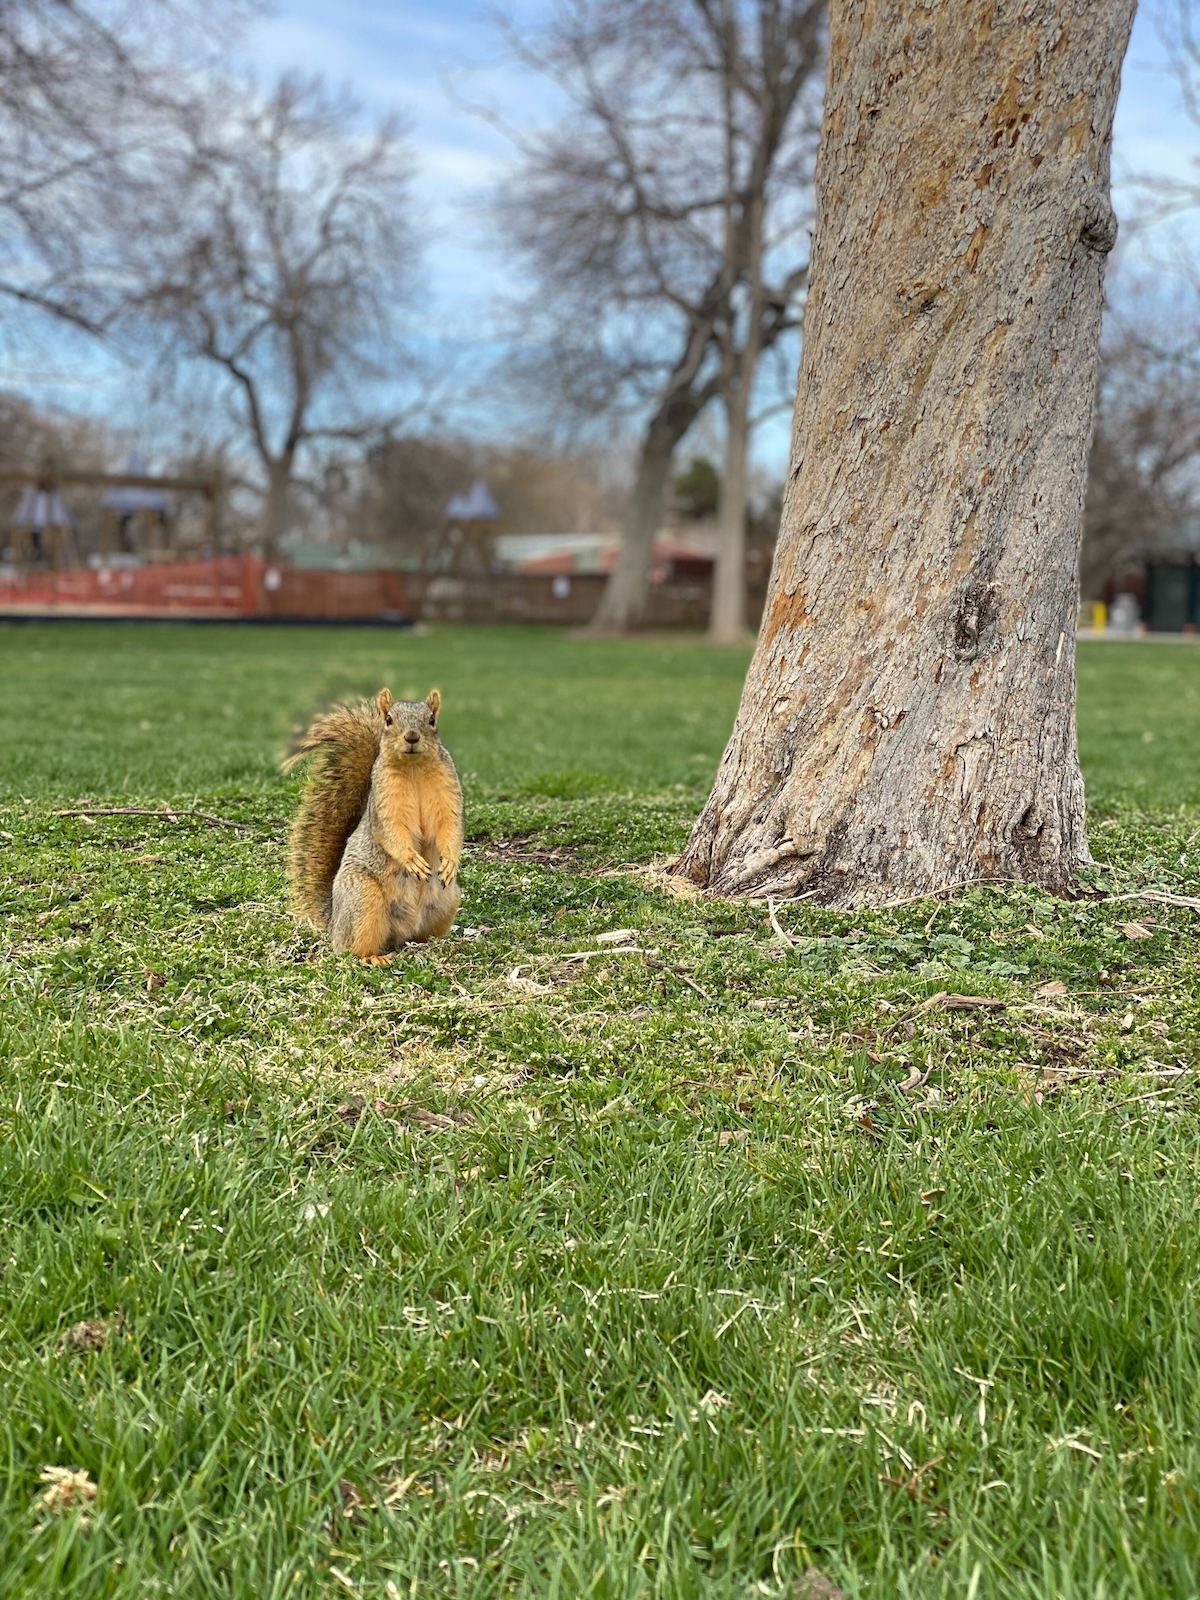 Squirrel Looking at Camera while standing by a tree in a park